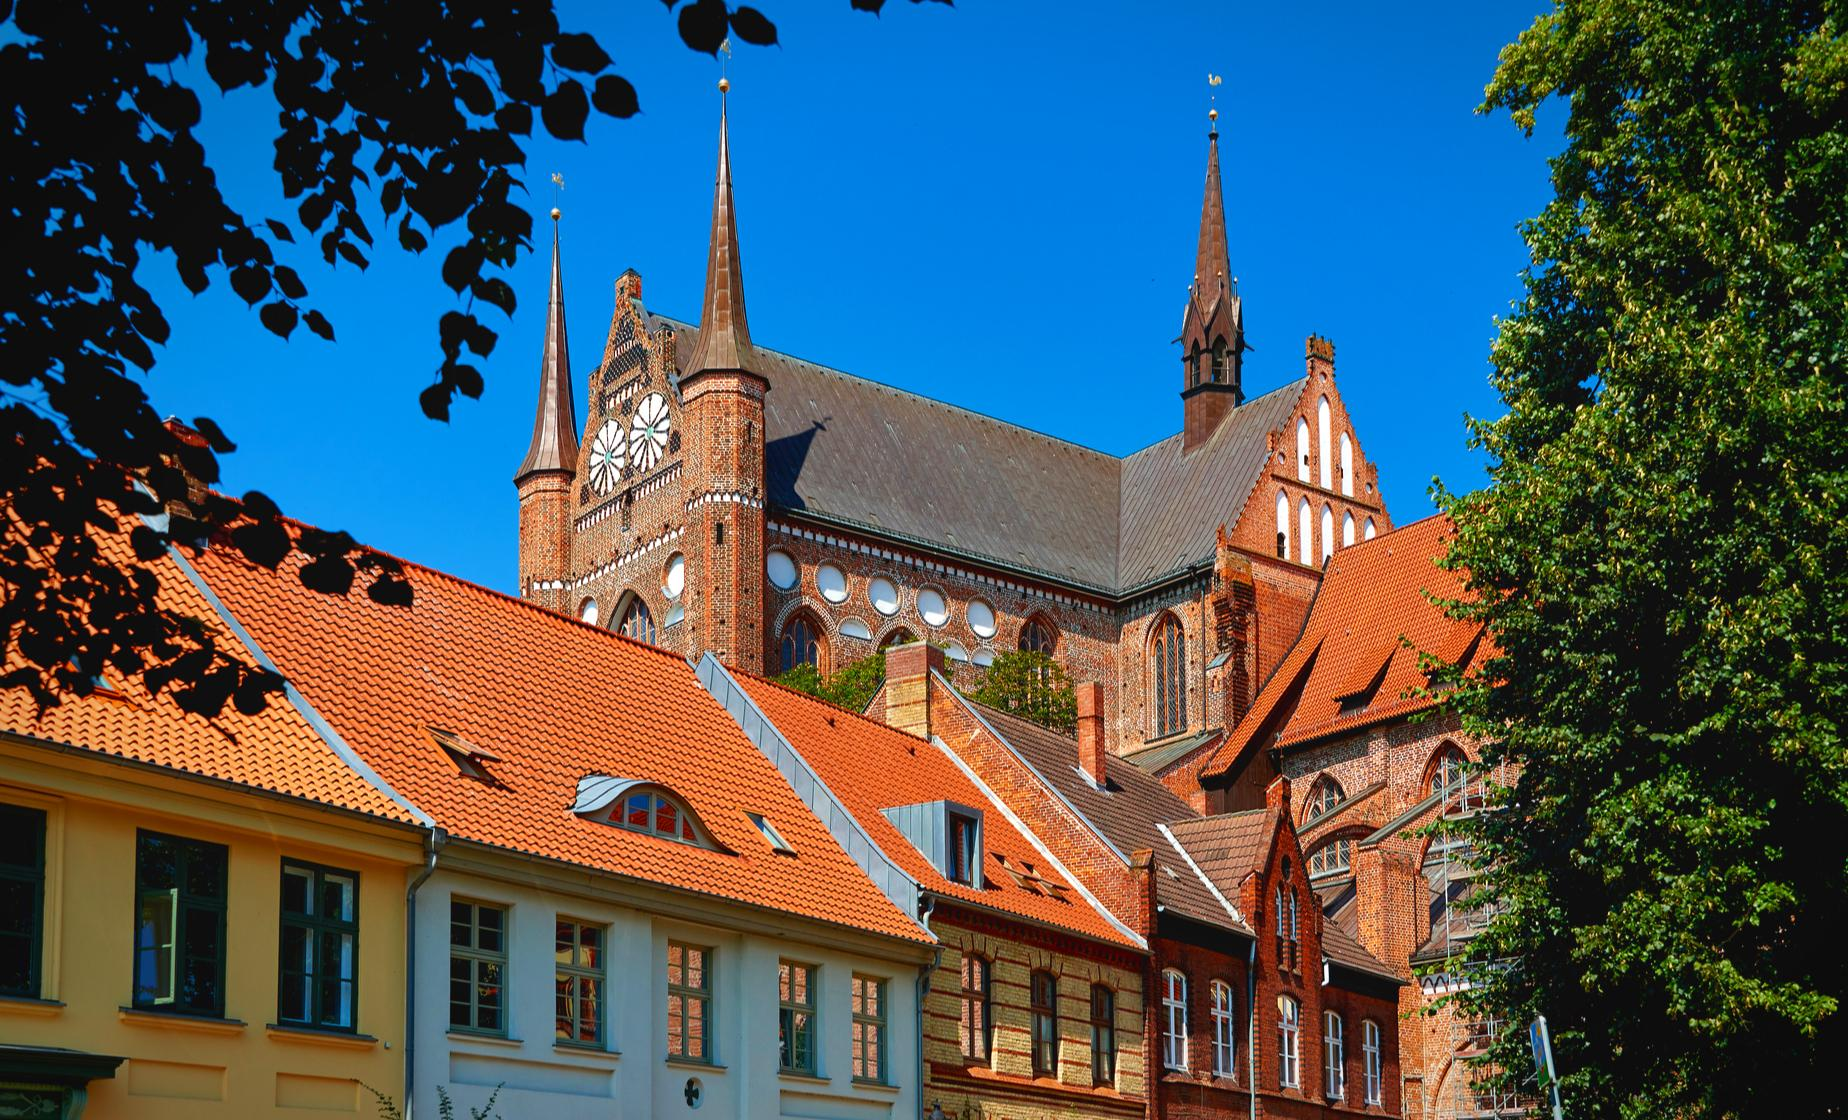 Private Baltic Gems - Luebeck and Wismar Tour from Berlin (Holstentor Gate, Schiffergesellschaft)